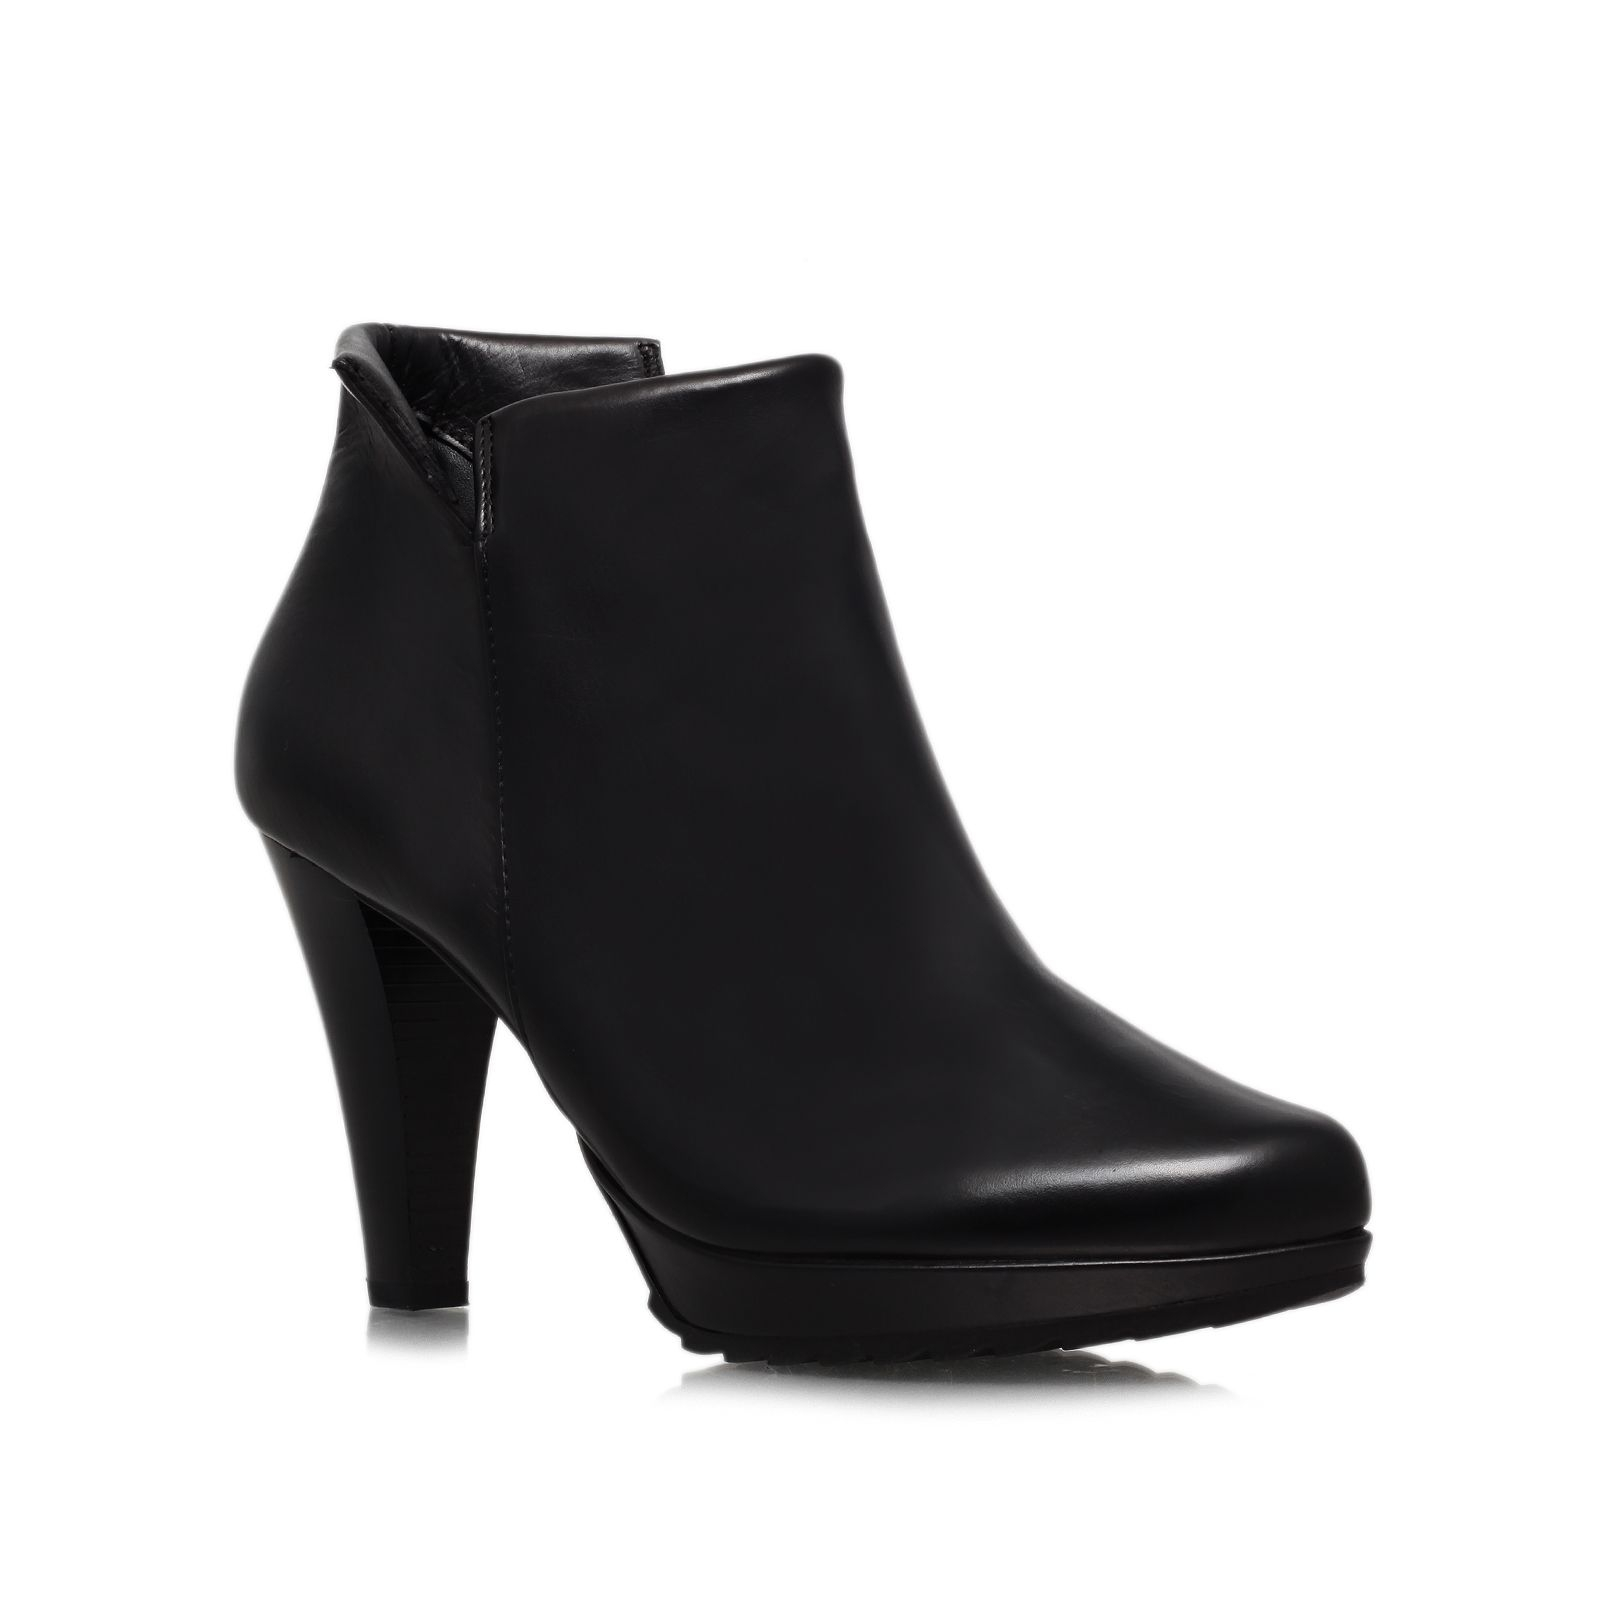 Paul Green Leather Ann High Heel Boots in Black